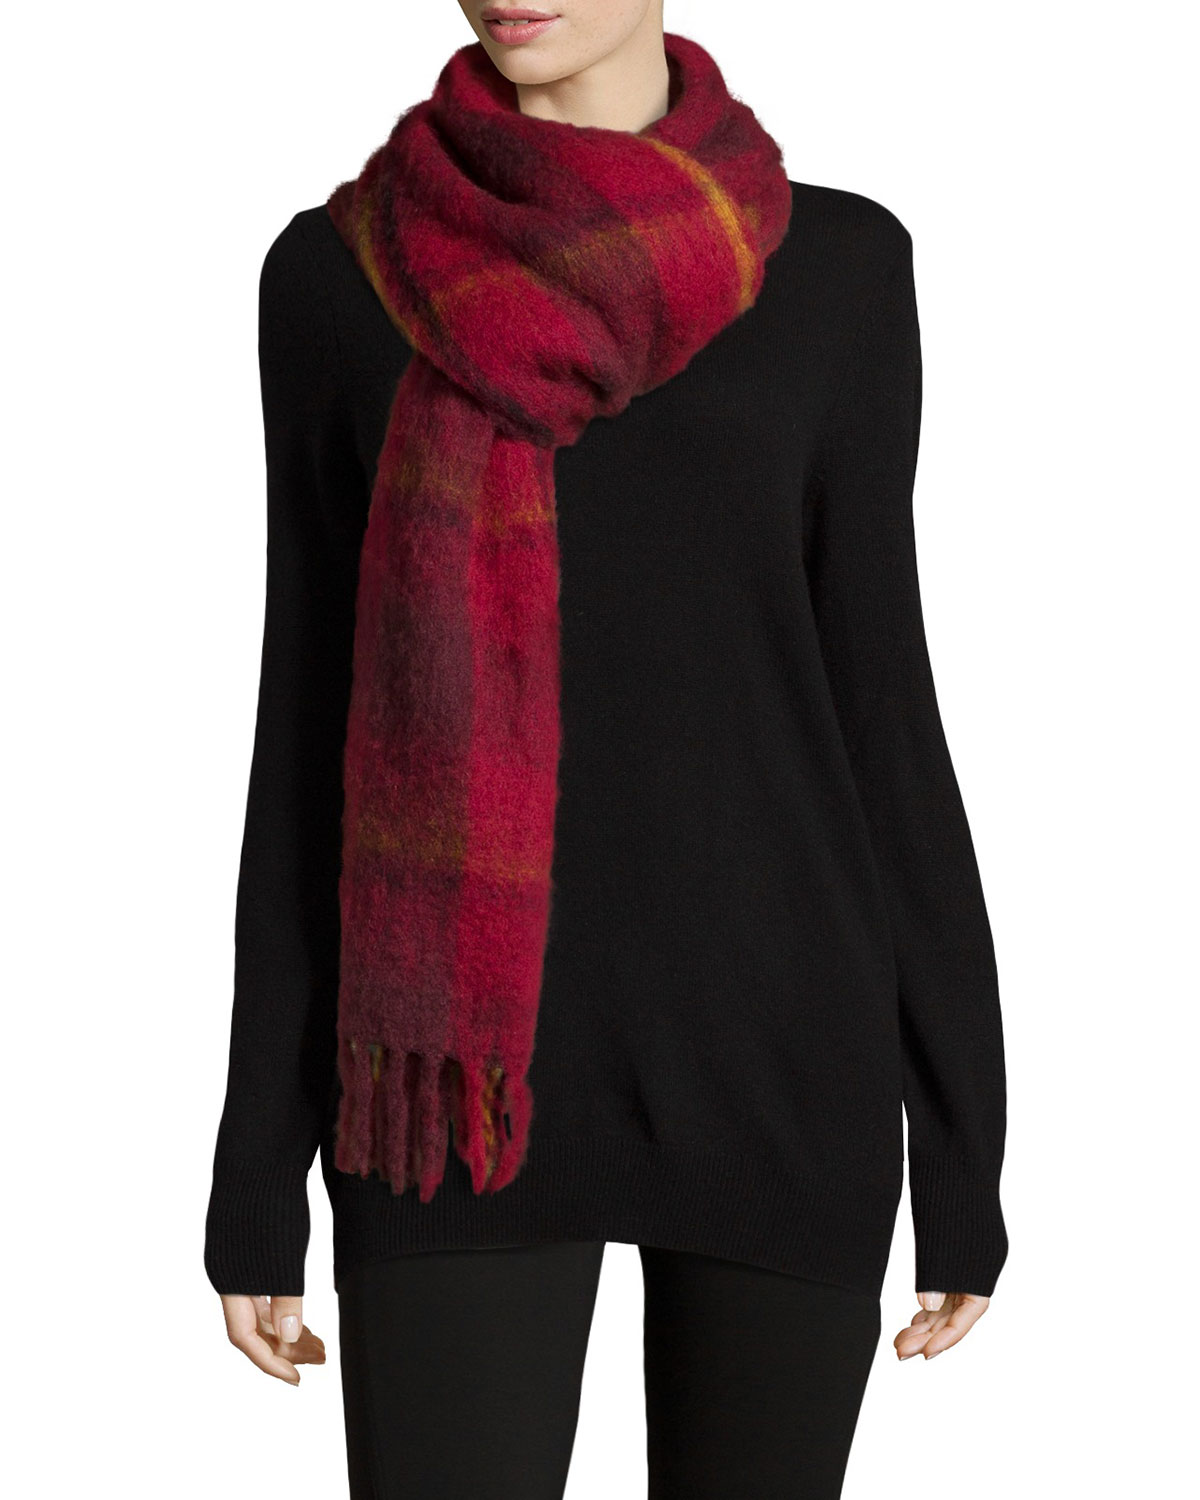 Blanket Plaid Knit Scarf, Red - MARC by Marc Jacobs